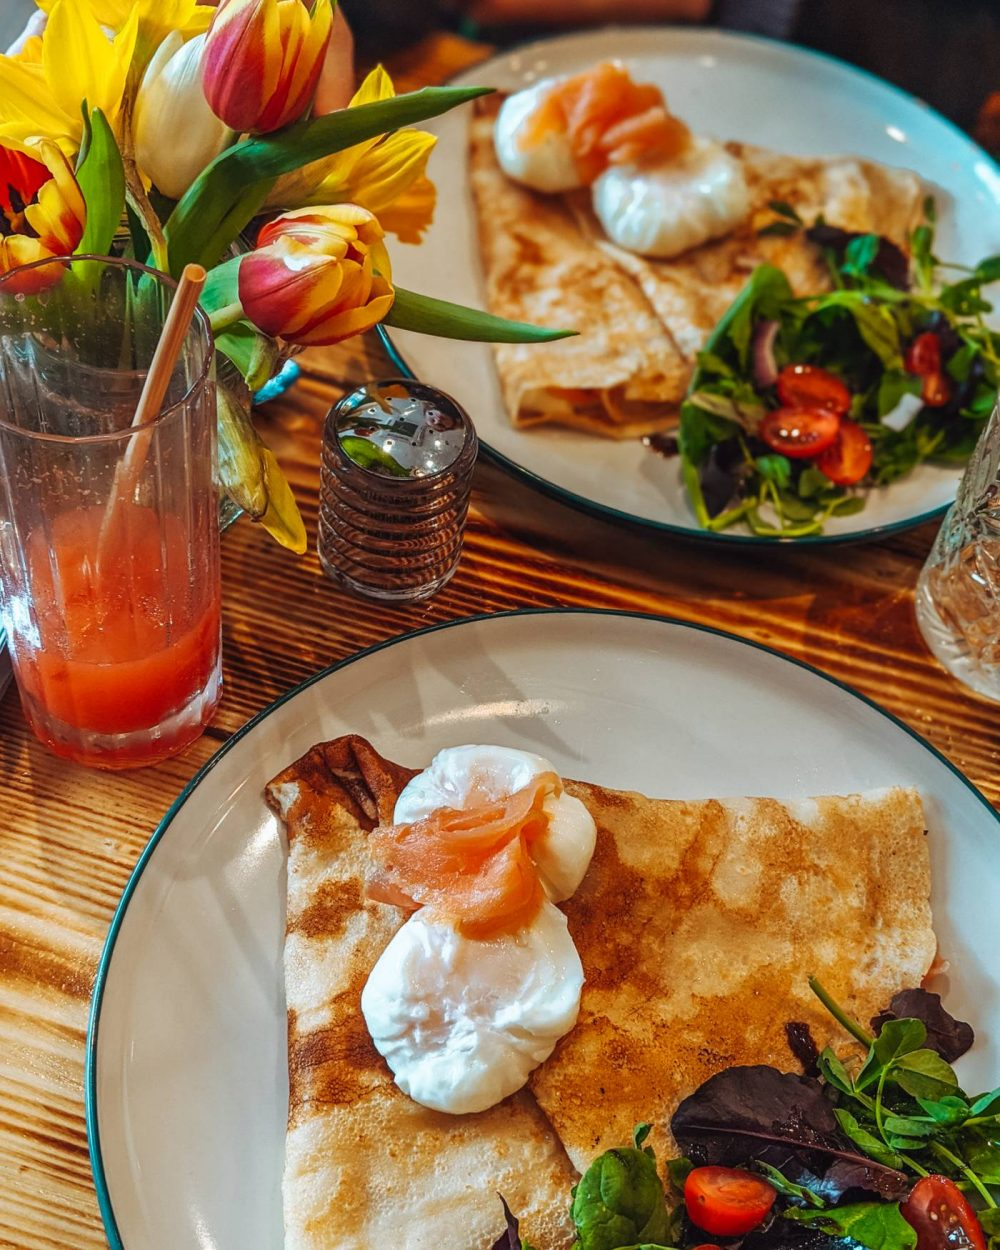 Egg and smoked salmon Crepe at Whisk Kitchen, Woburn Sands - Eat Out to Help out in Milton Keynes.